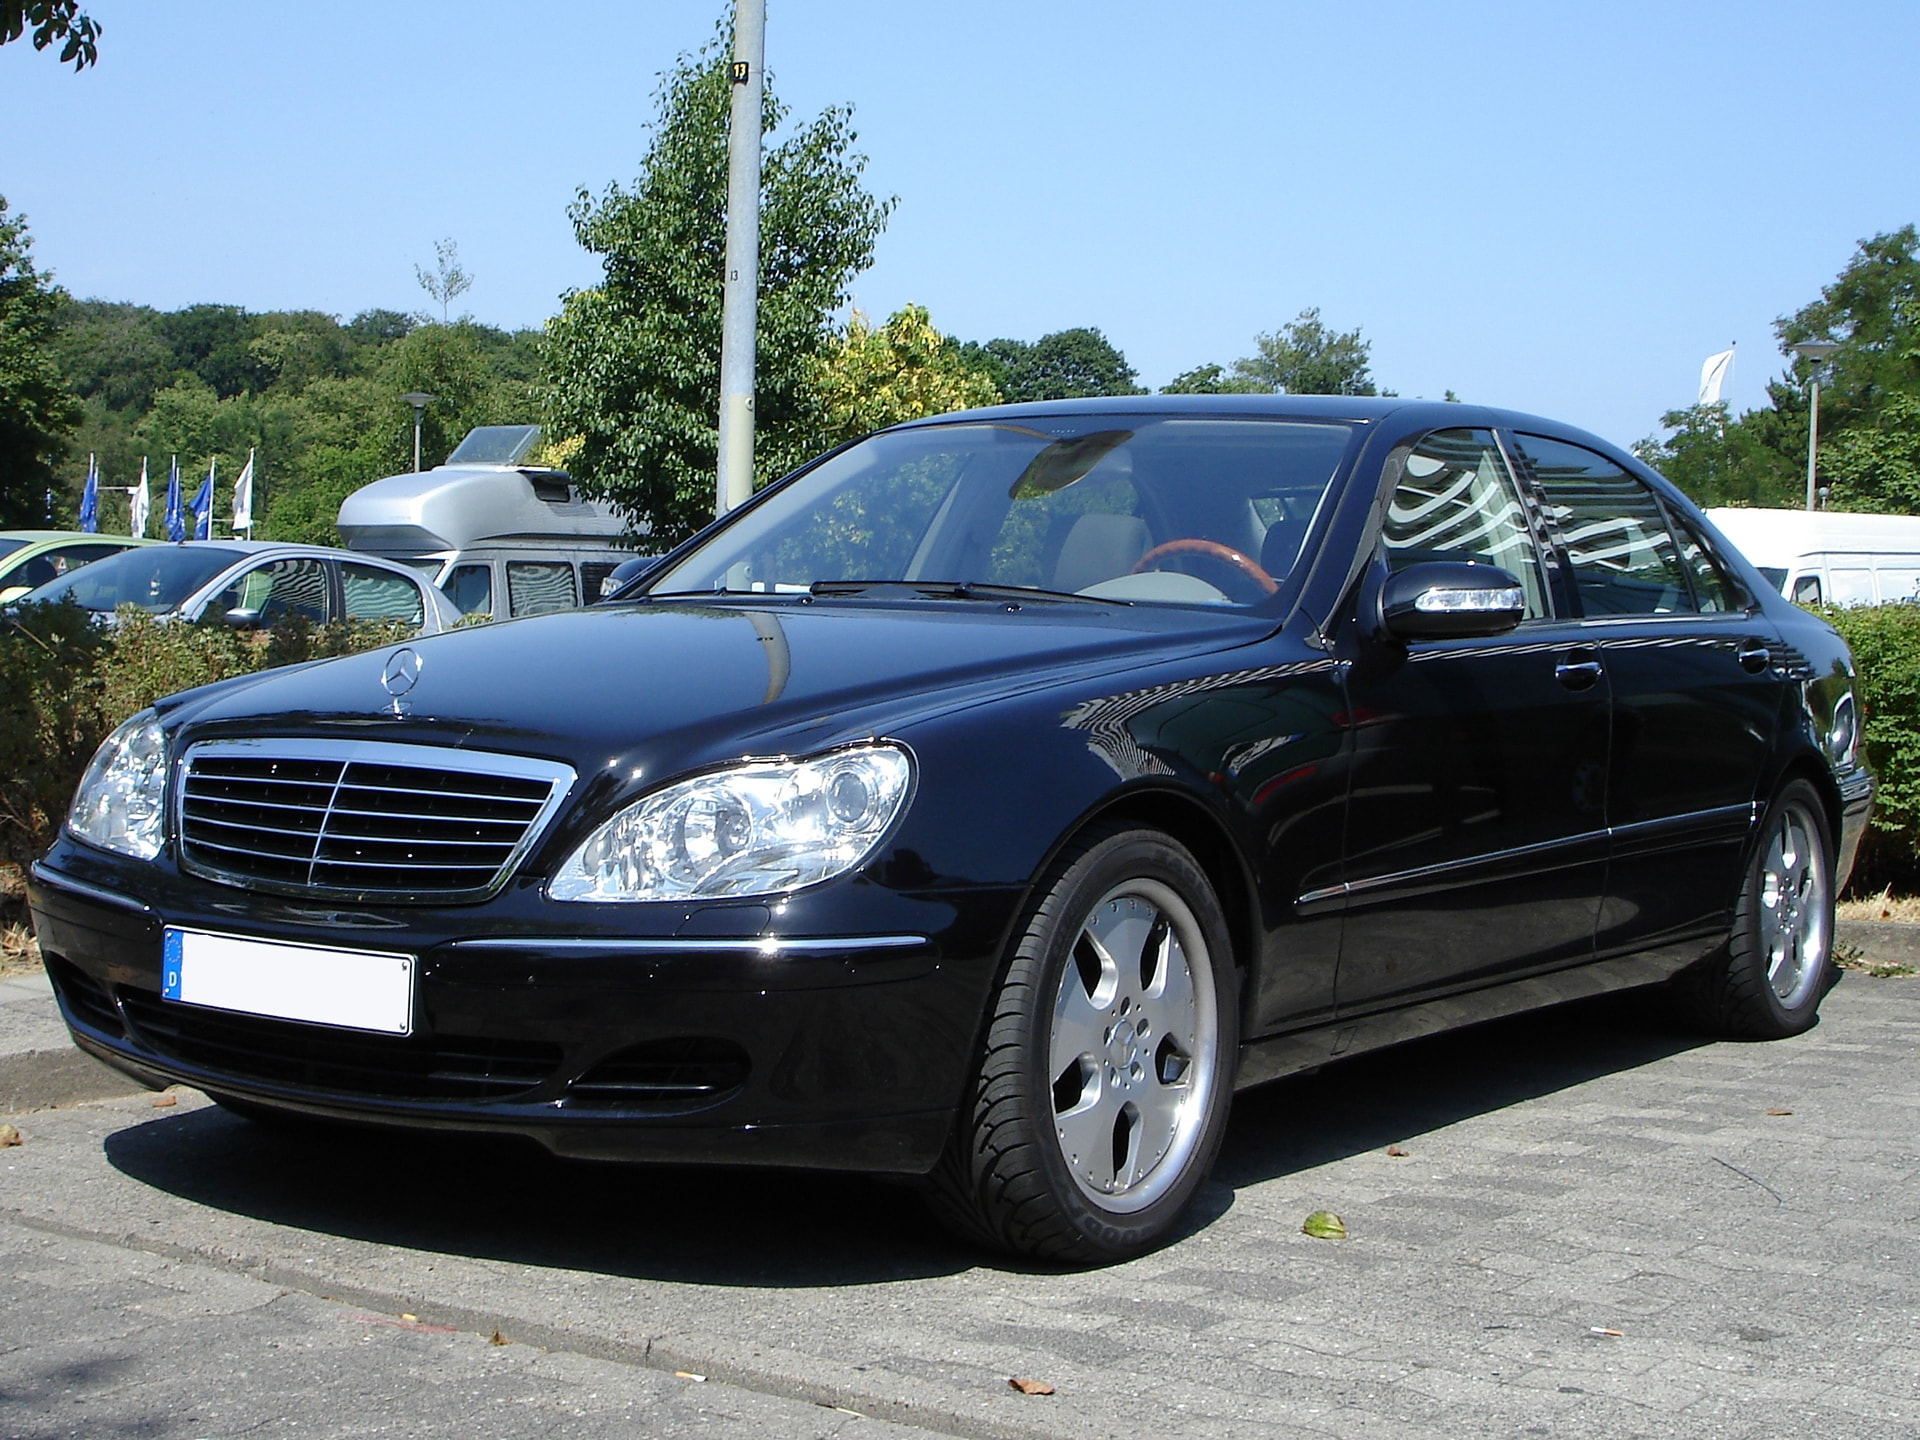 Mercedes benz s class w220 lease toplimo kz for Mercedes benz ml lease